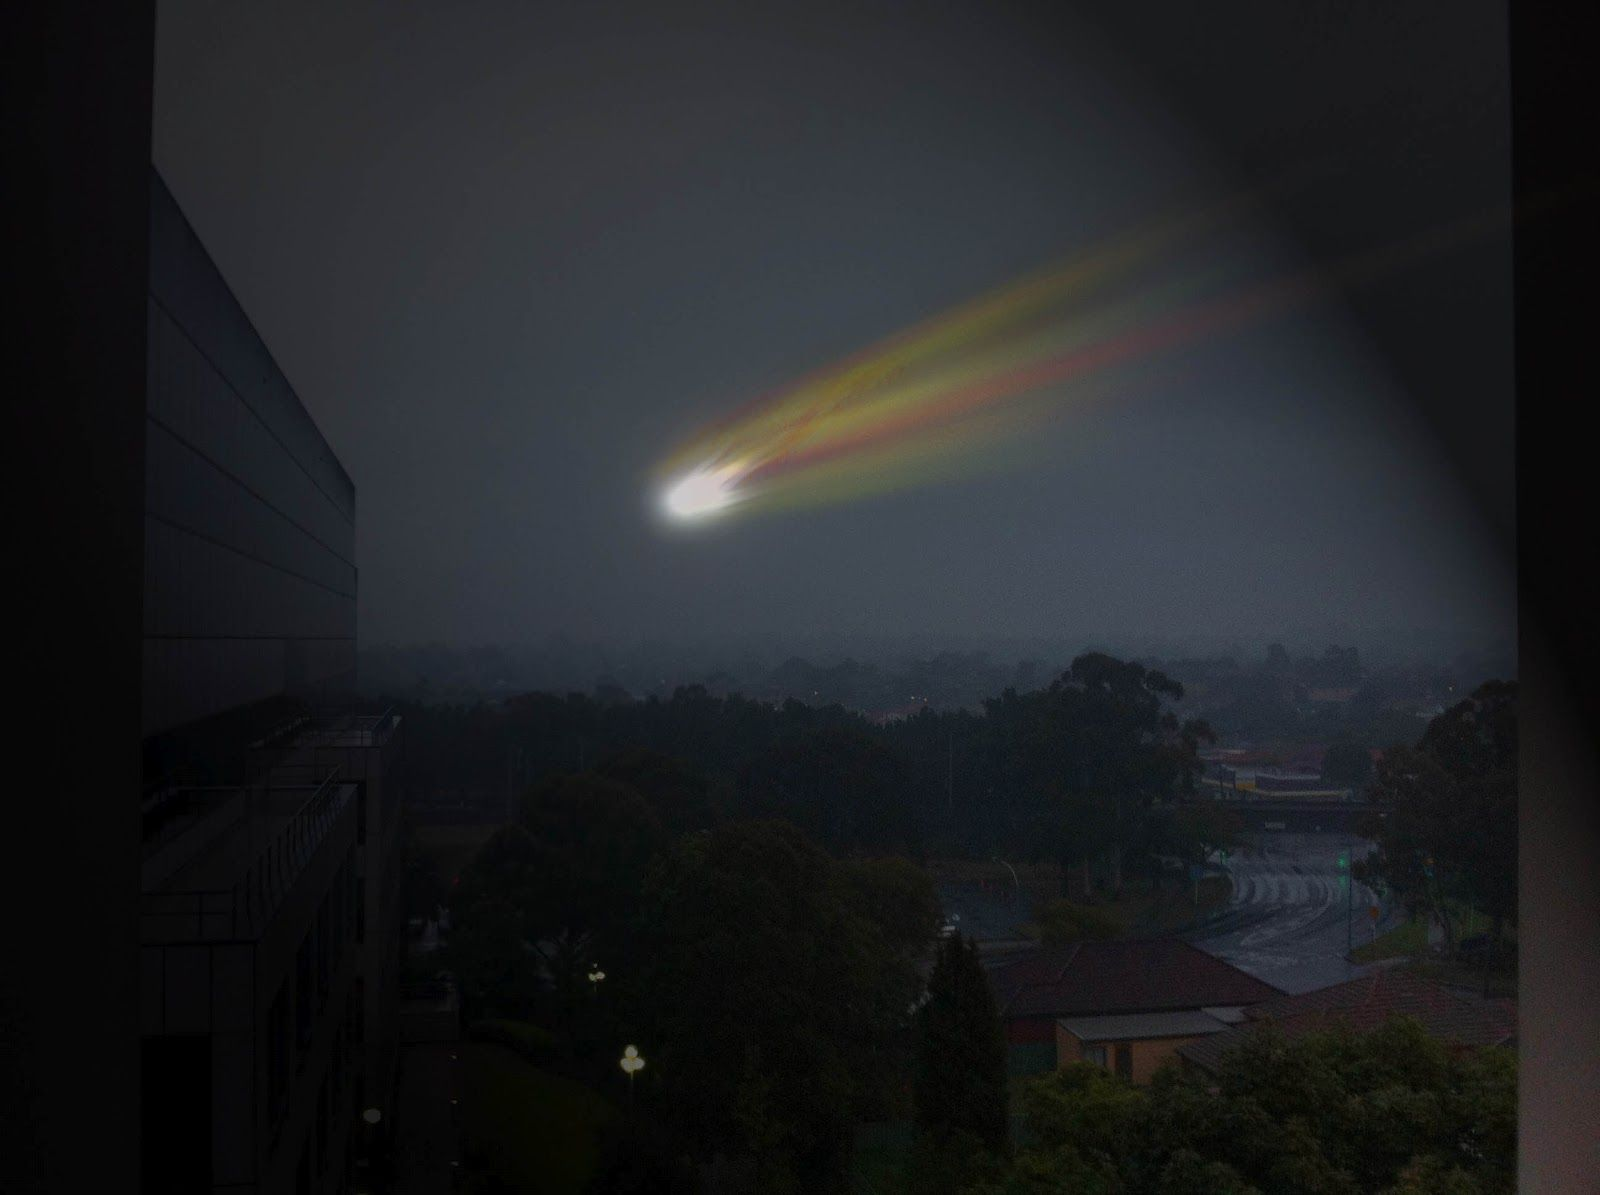 Large bright fireball with orange-green tail breaks apart ...